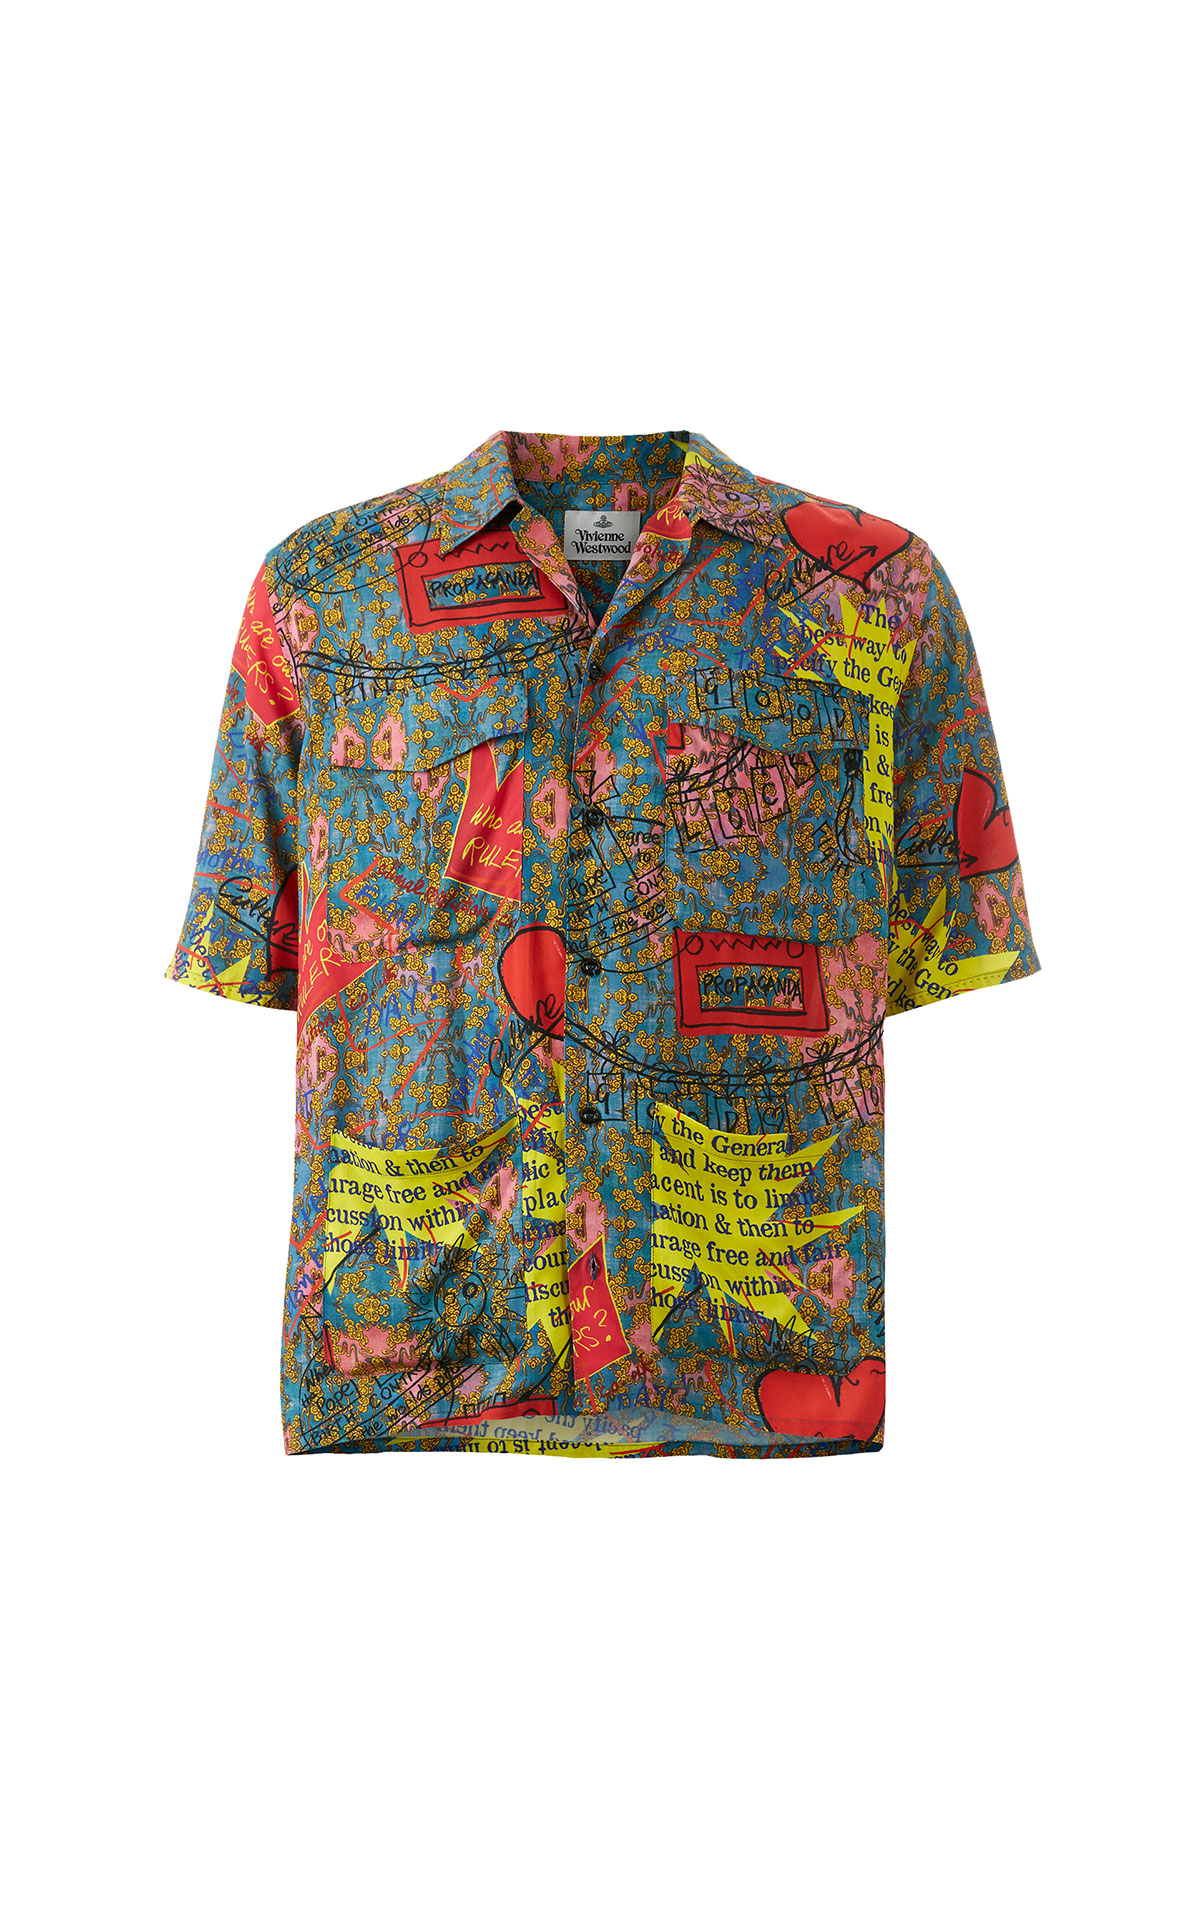 Vivienne Westwood BB shirt from Bicester Village